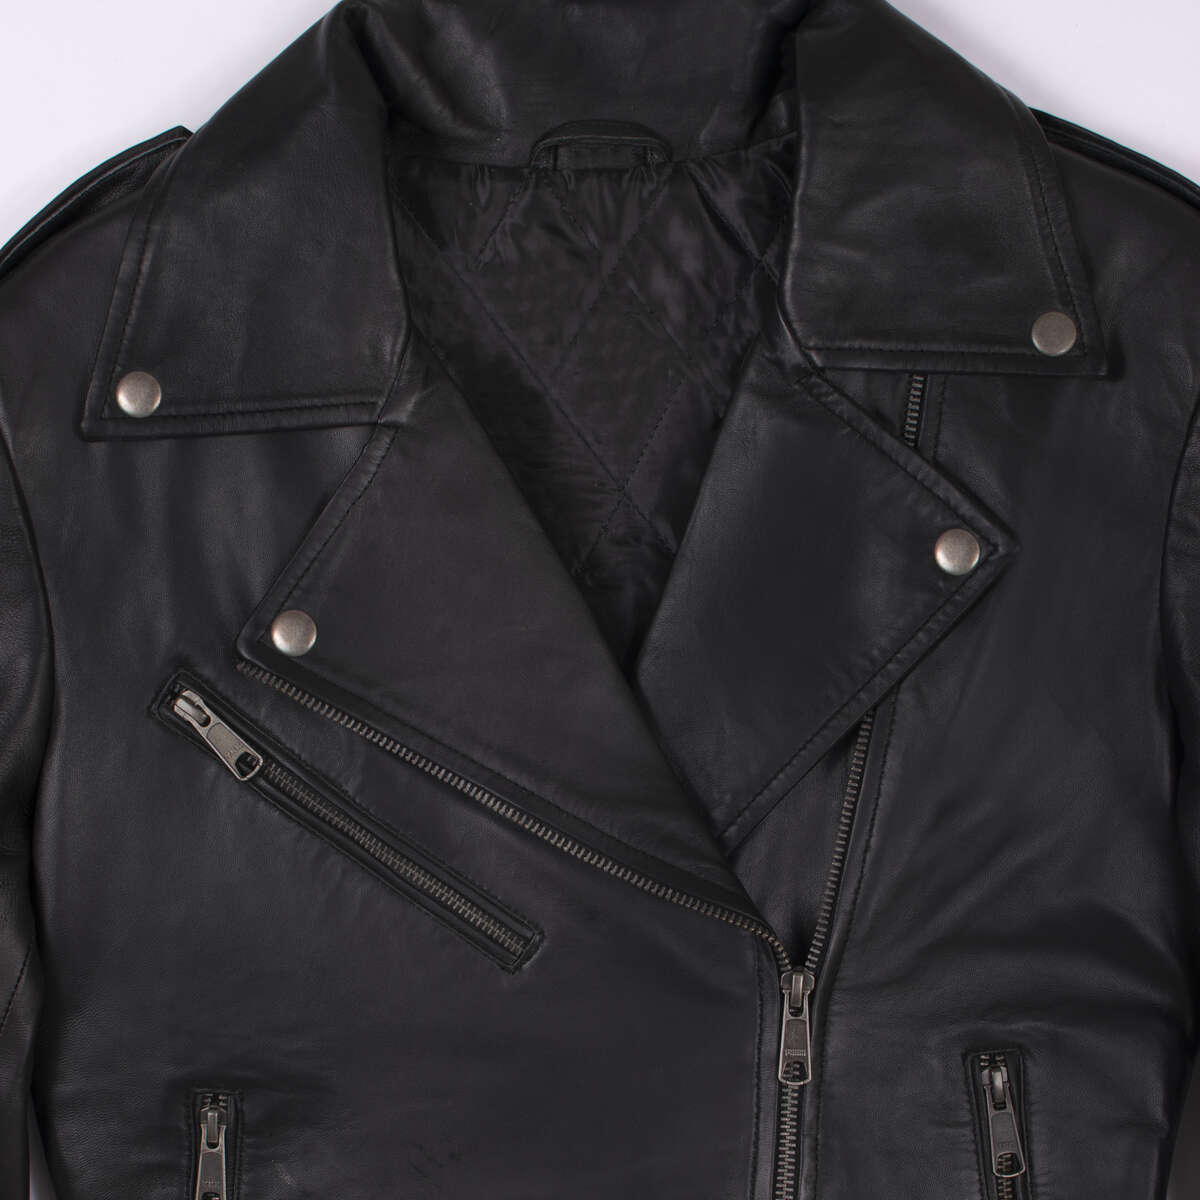 Collar and Front Zipper Detail of Black Classic Leather Biker Jacket